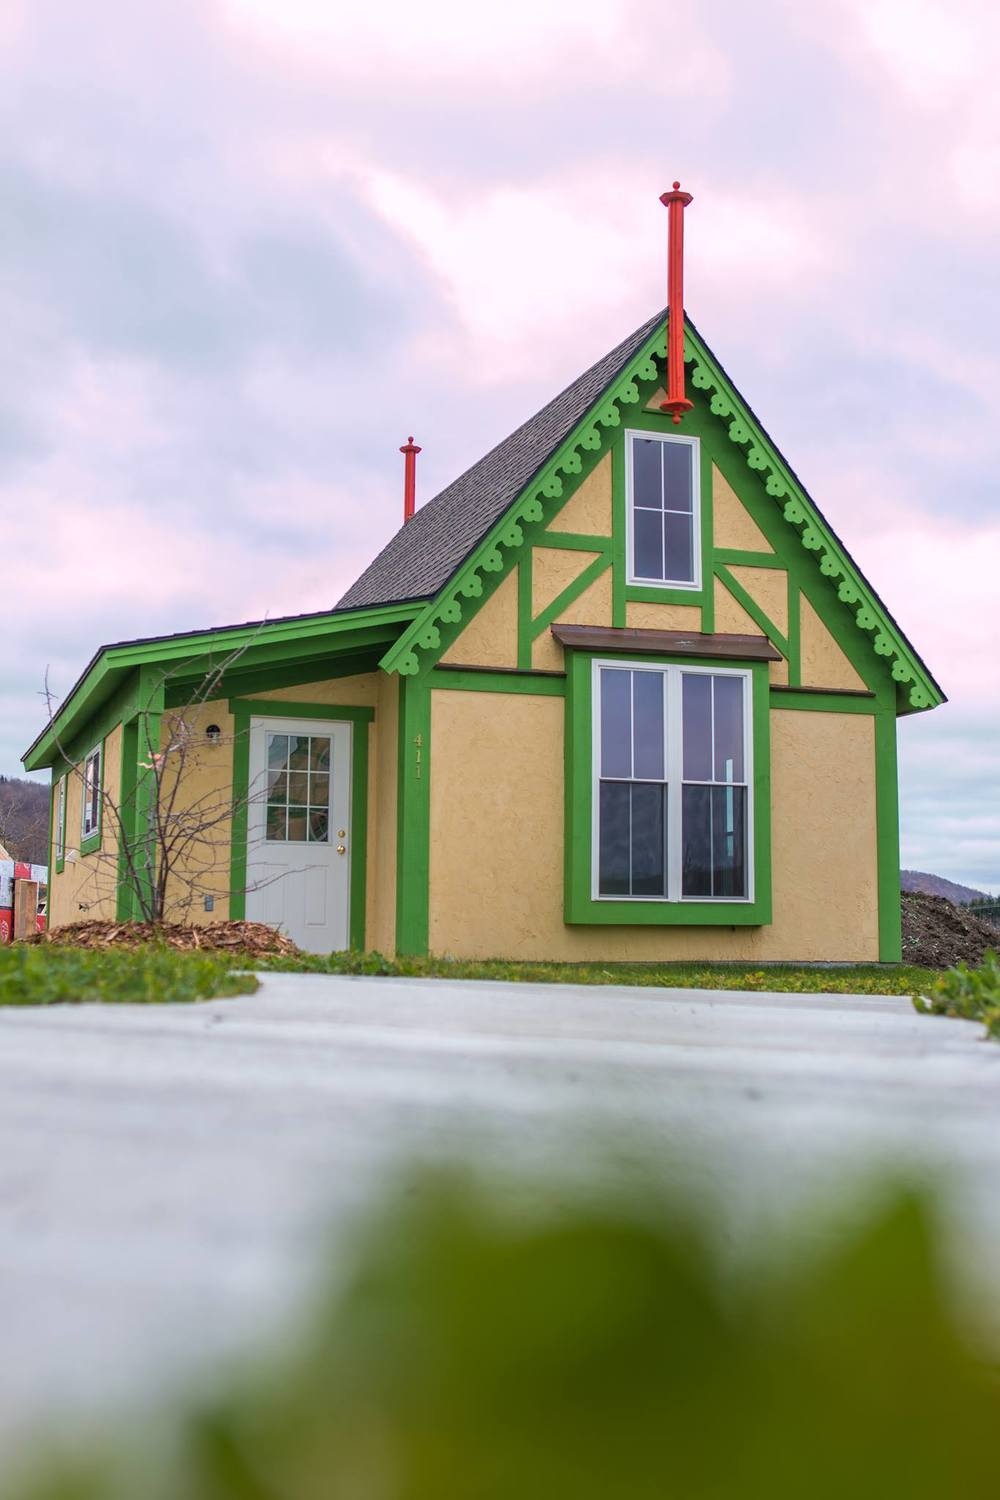 Fausel-Imagery-Green-Tiny-House.jpg